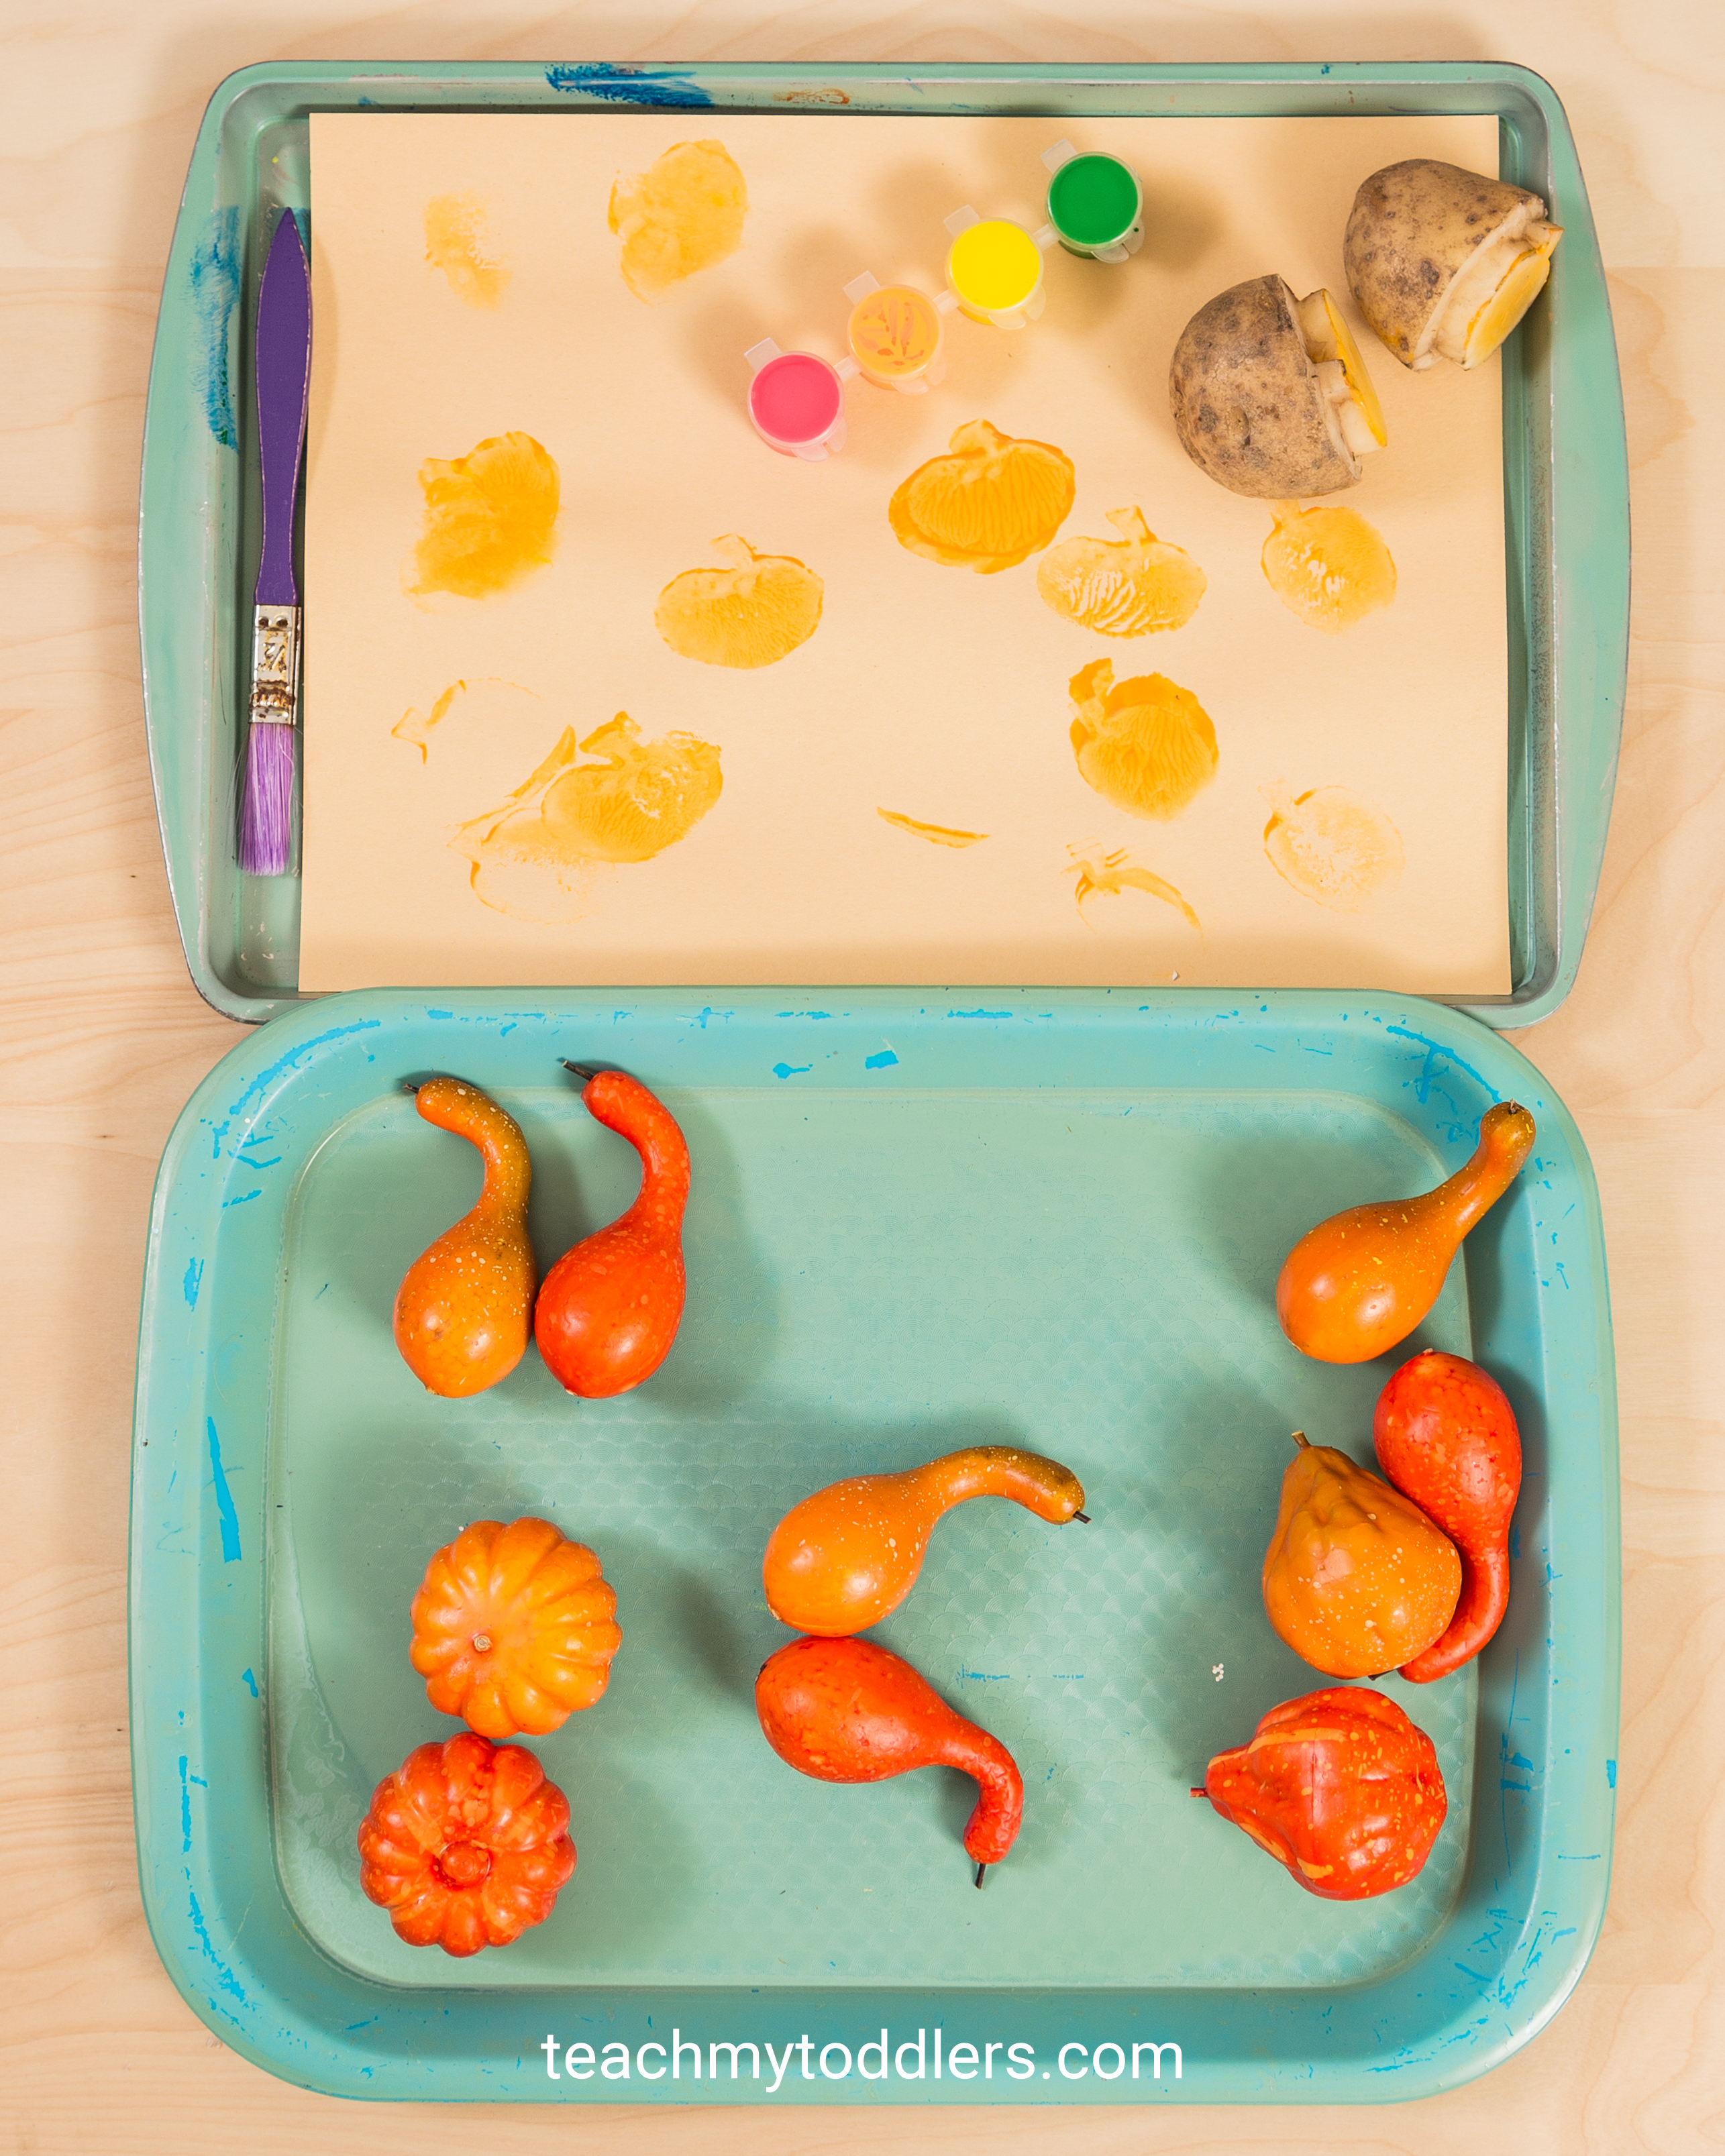 Learn how these pumpkin activities can teach your toddlers about fall